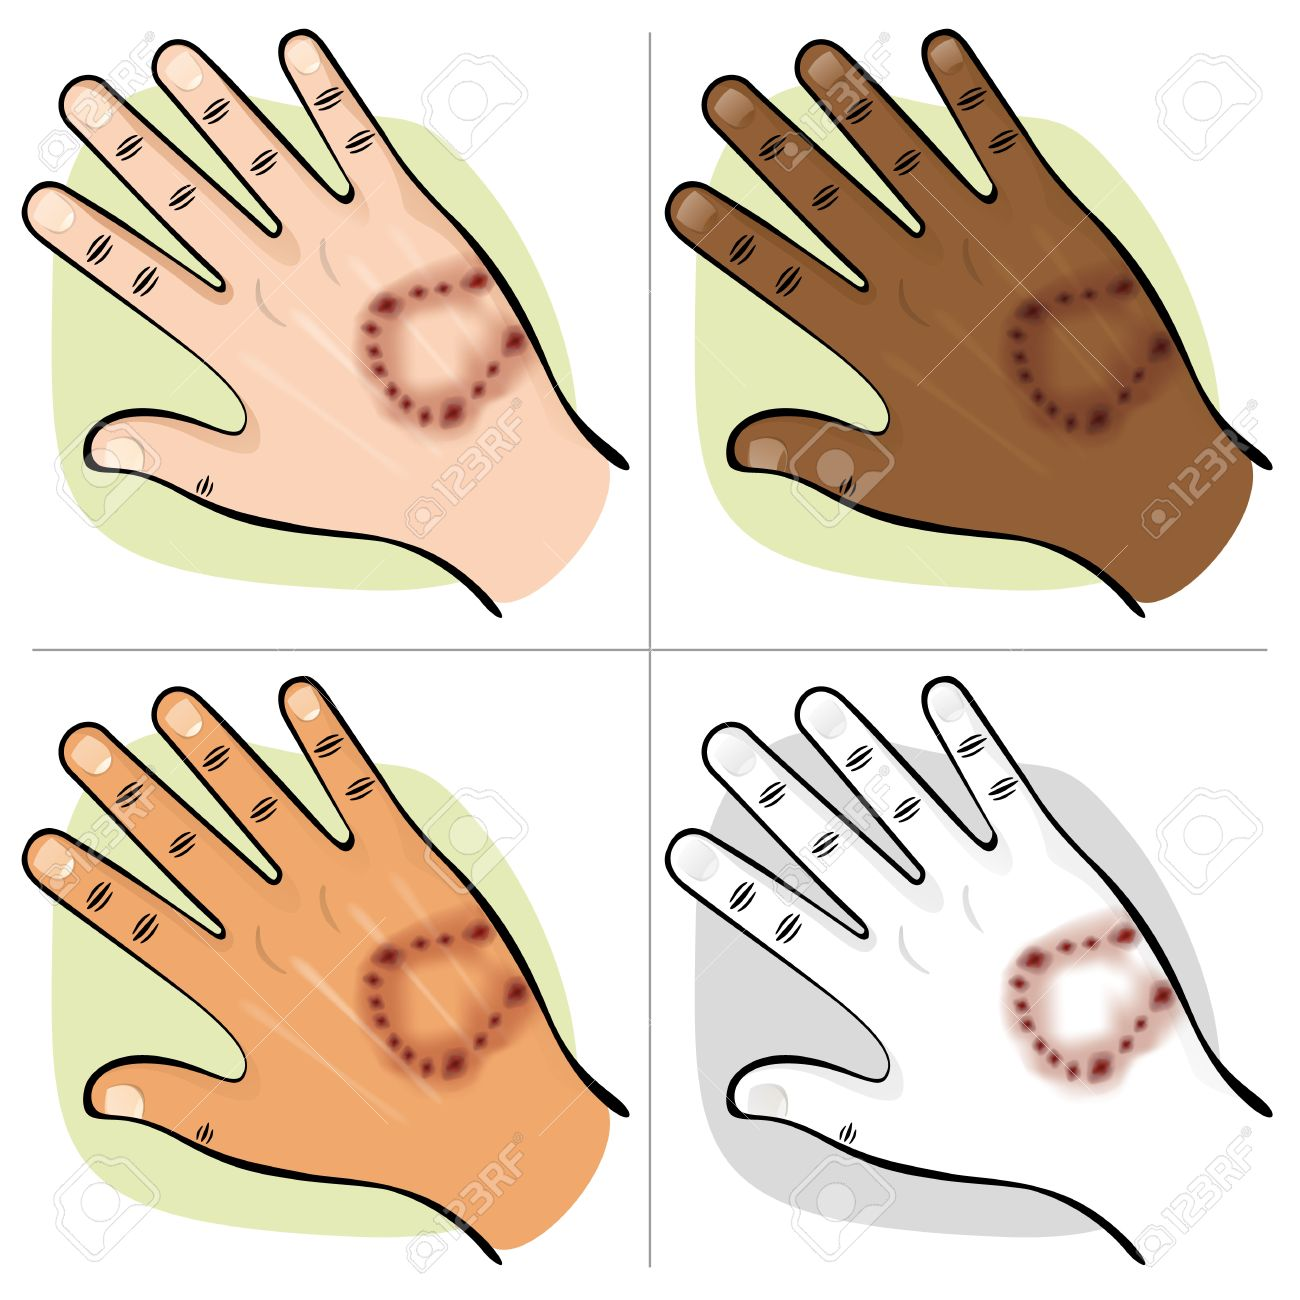 Illustration Is Part Of The Human Body Ethnicities Hand With